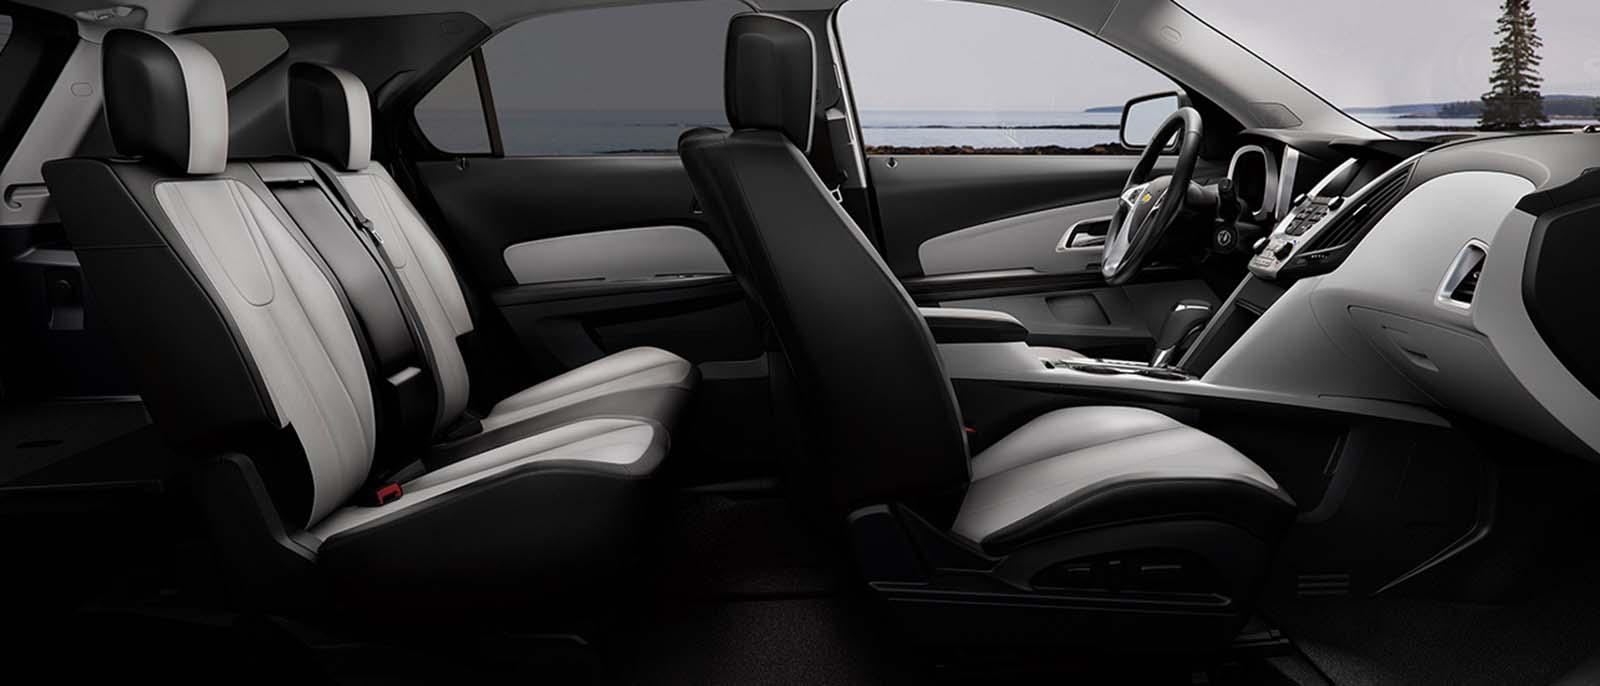 2016 chevy equinox in chicago il mike anderson chicago - 2015 chevy equinox interior photos ...